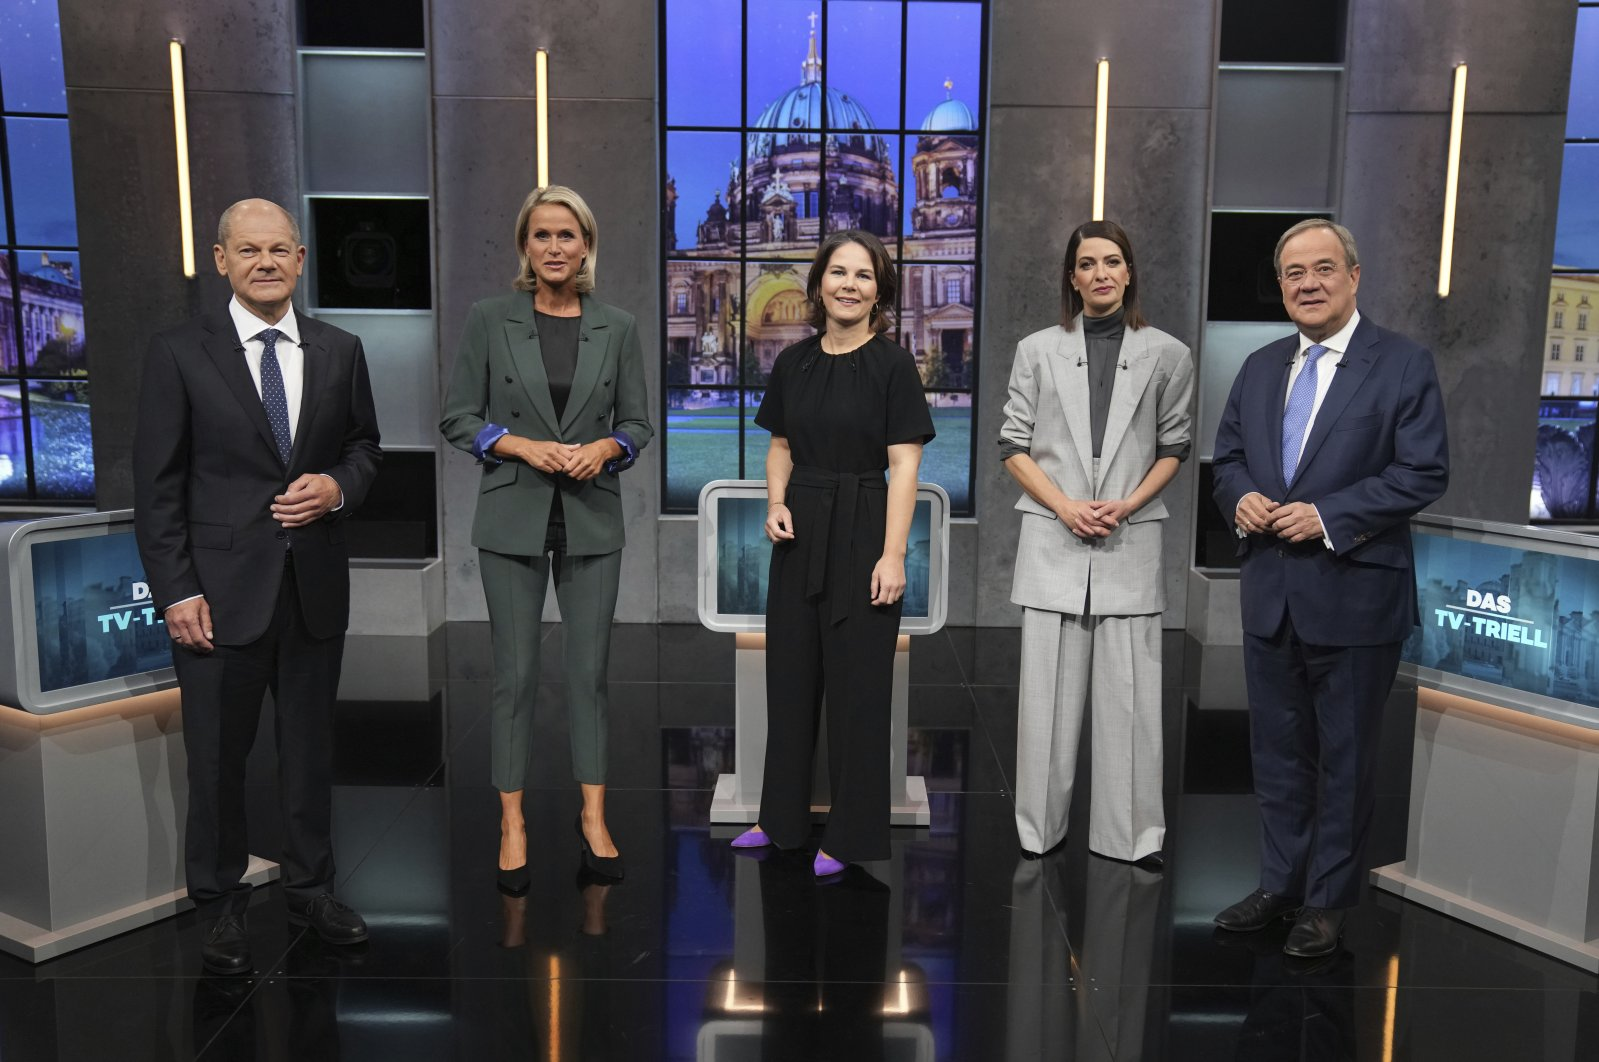 Olaf Scholz, candidate for chancellor of the SPD and Federal Minister of Finance, (L), Claudia von Brauchitsch, moderator, (2nd L), Annalena Baerbock, German Green Party co-leader and candidate for chancellor, (C) , Linda Zervakis, moderator, and Armin Laschet, candidate for chancellor of the CDU/CSU and chairman of the CDU, (R) , stand together before the start of the third TV debate in Berlin, Germany, Sept. 19, 2021. (AP Photo)